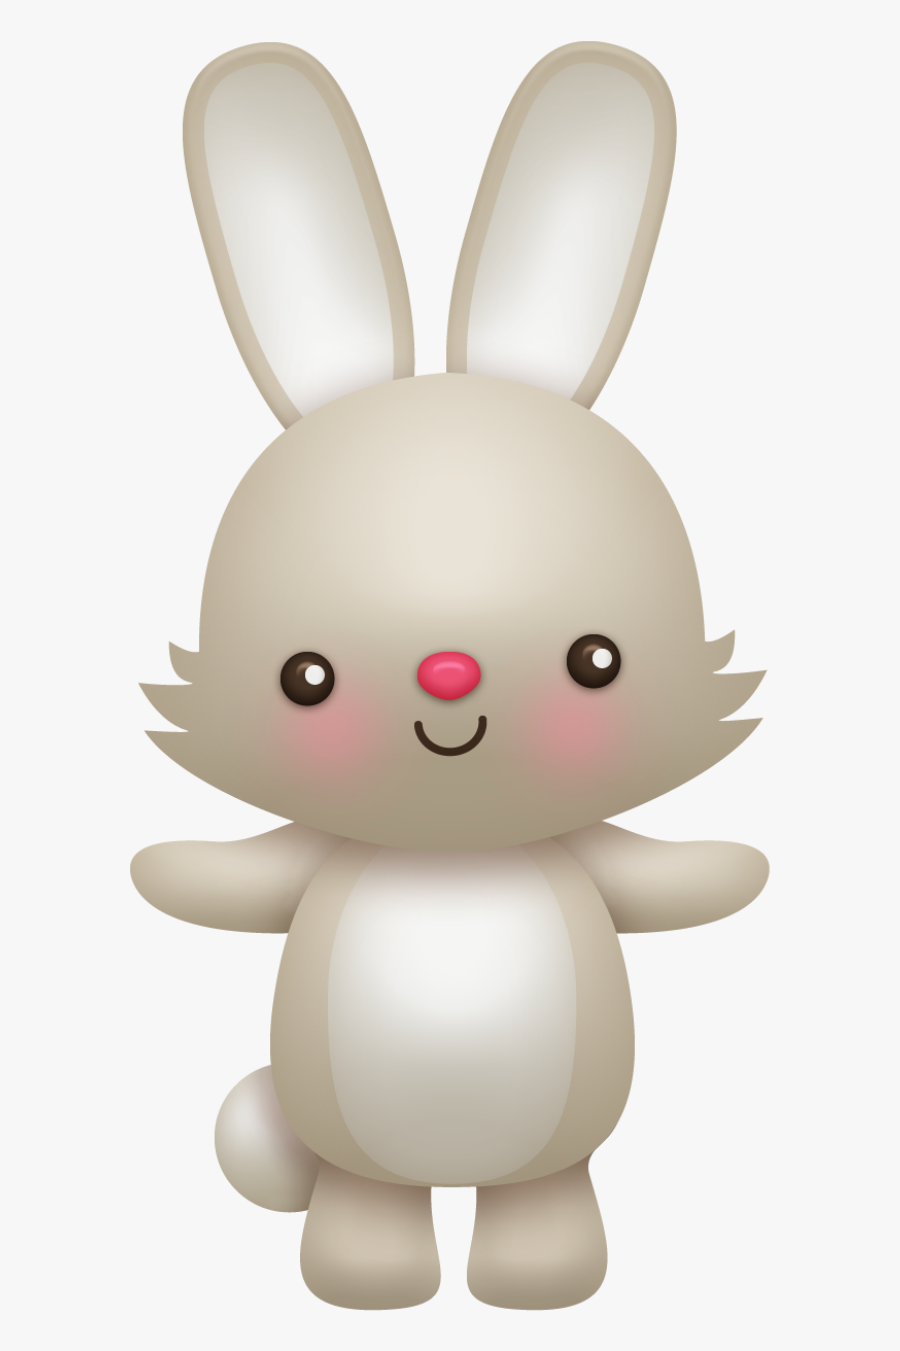 Rabbit,skin,rabbits And Rabbit,clip Art,whiskers,easter.